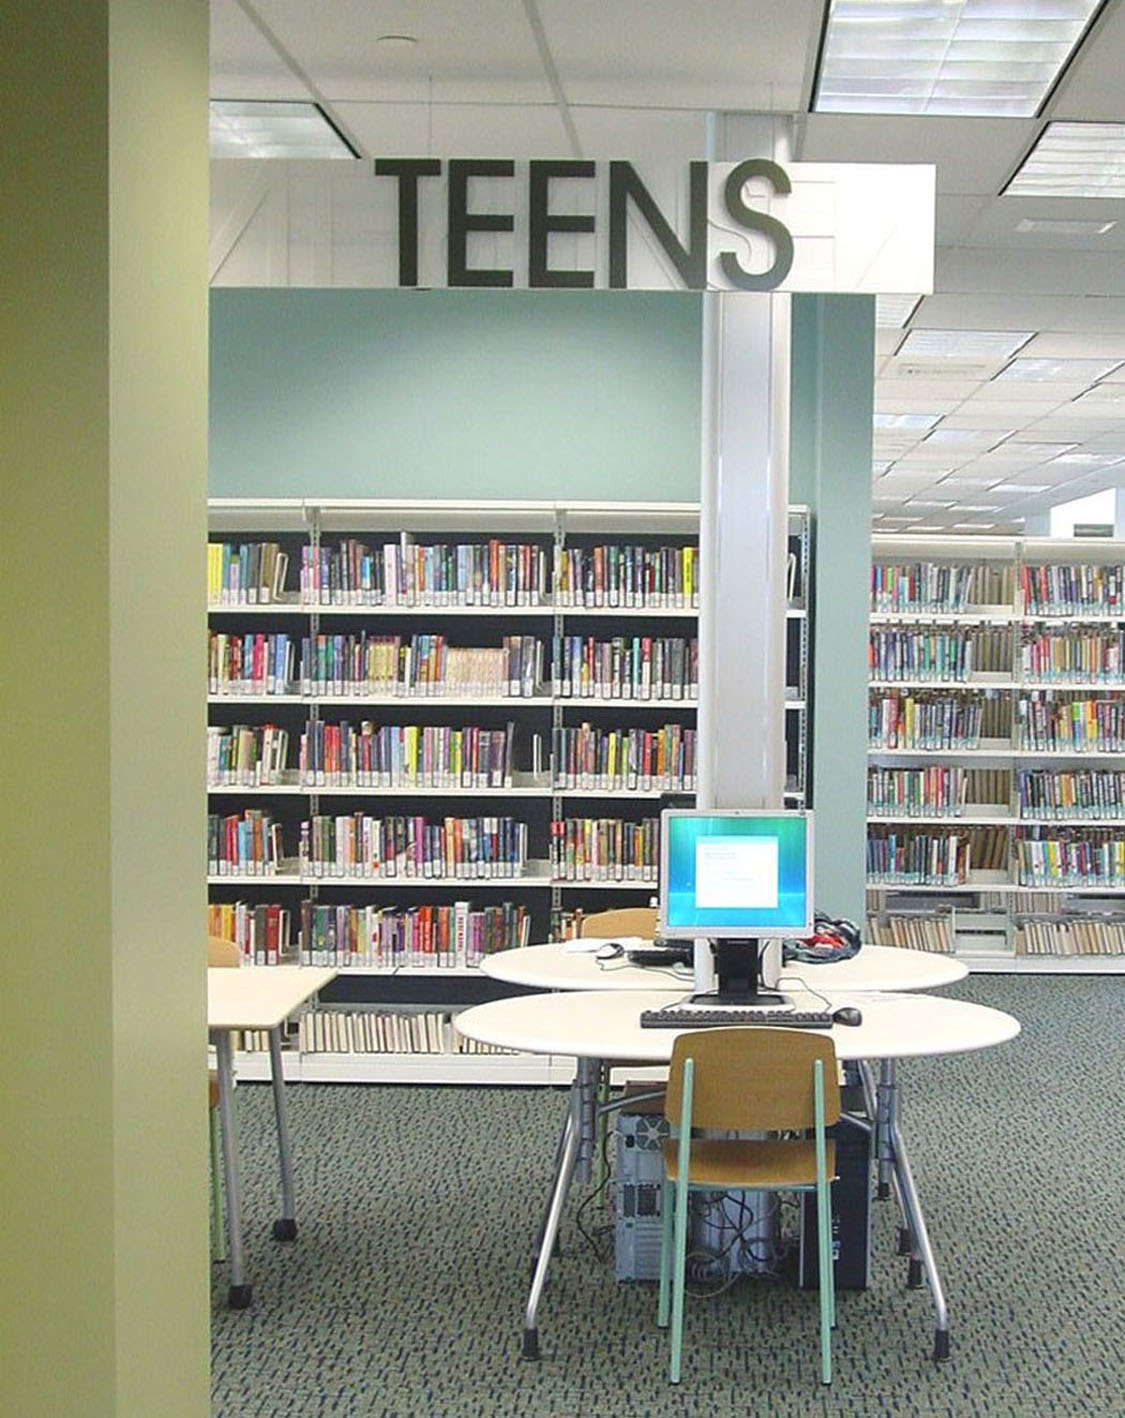 005 - Kempsville Library Cropped.JPG